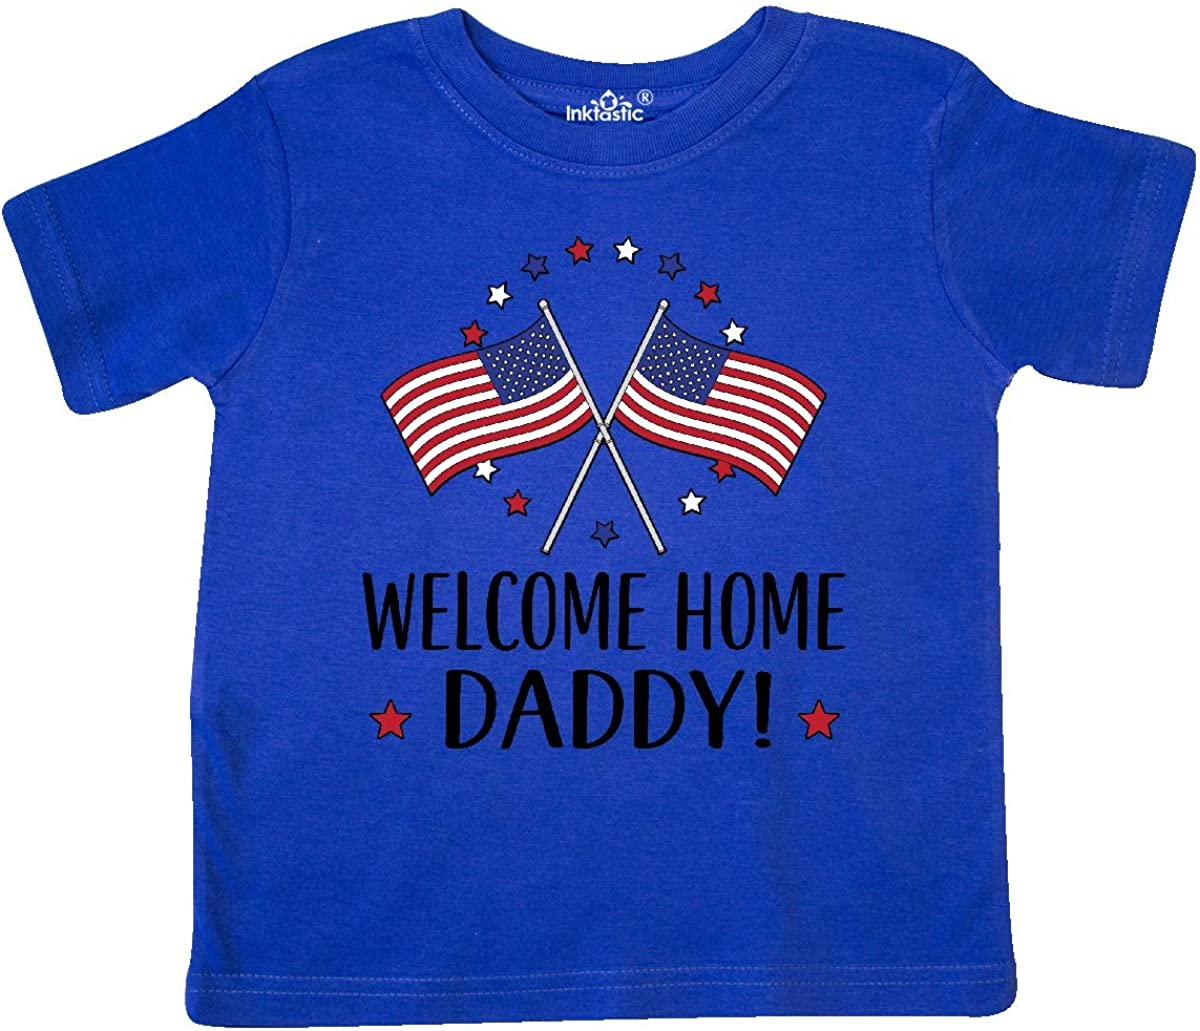 inktastic Military Homecoming Welcome Home Daddy Toddler T-Shirt